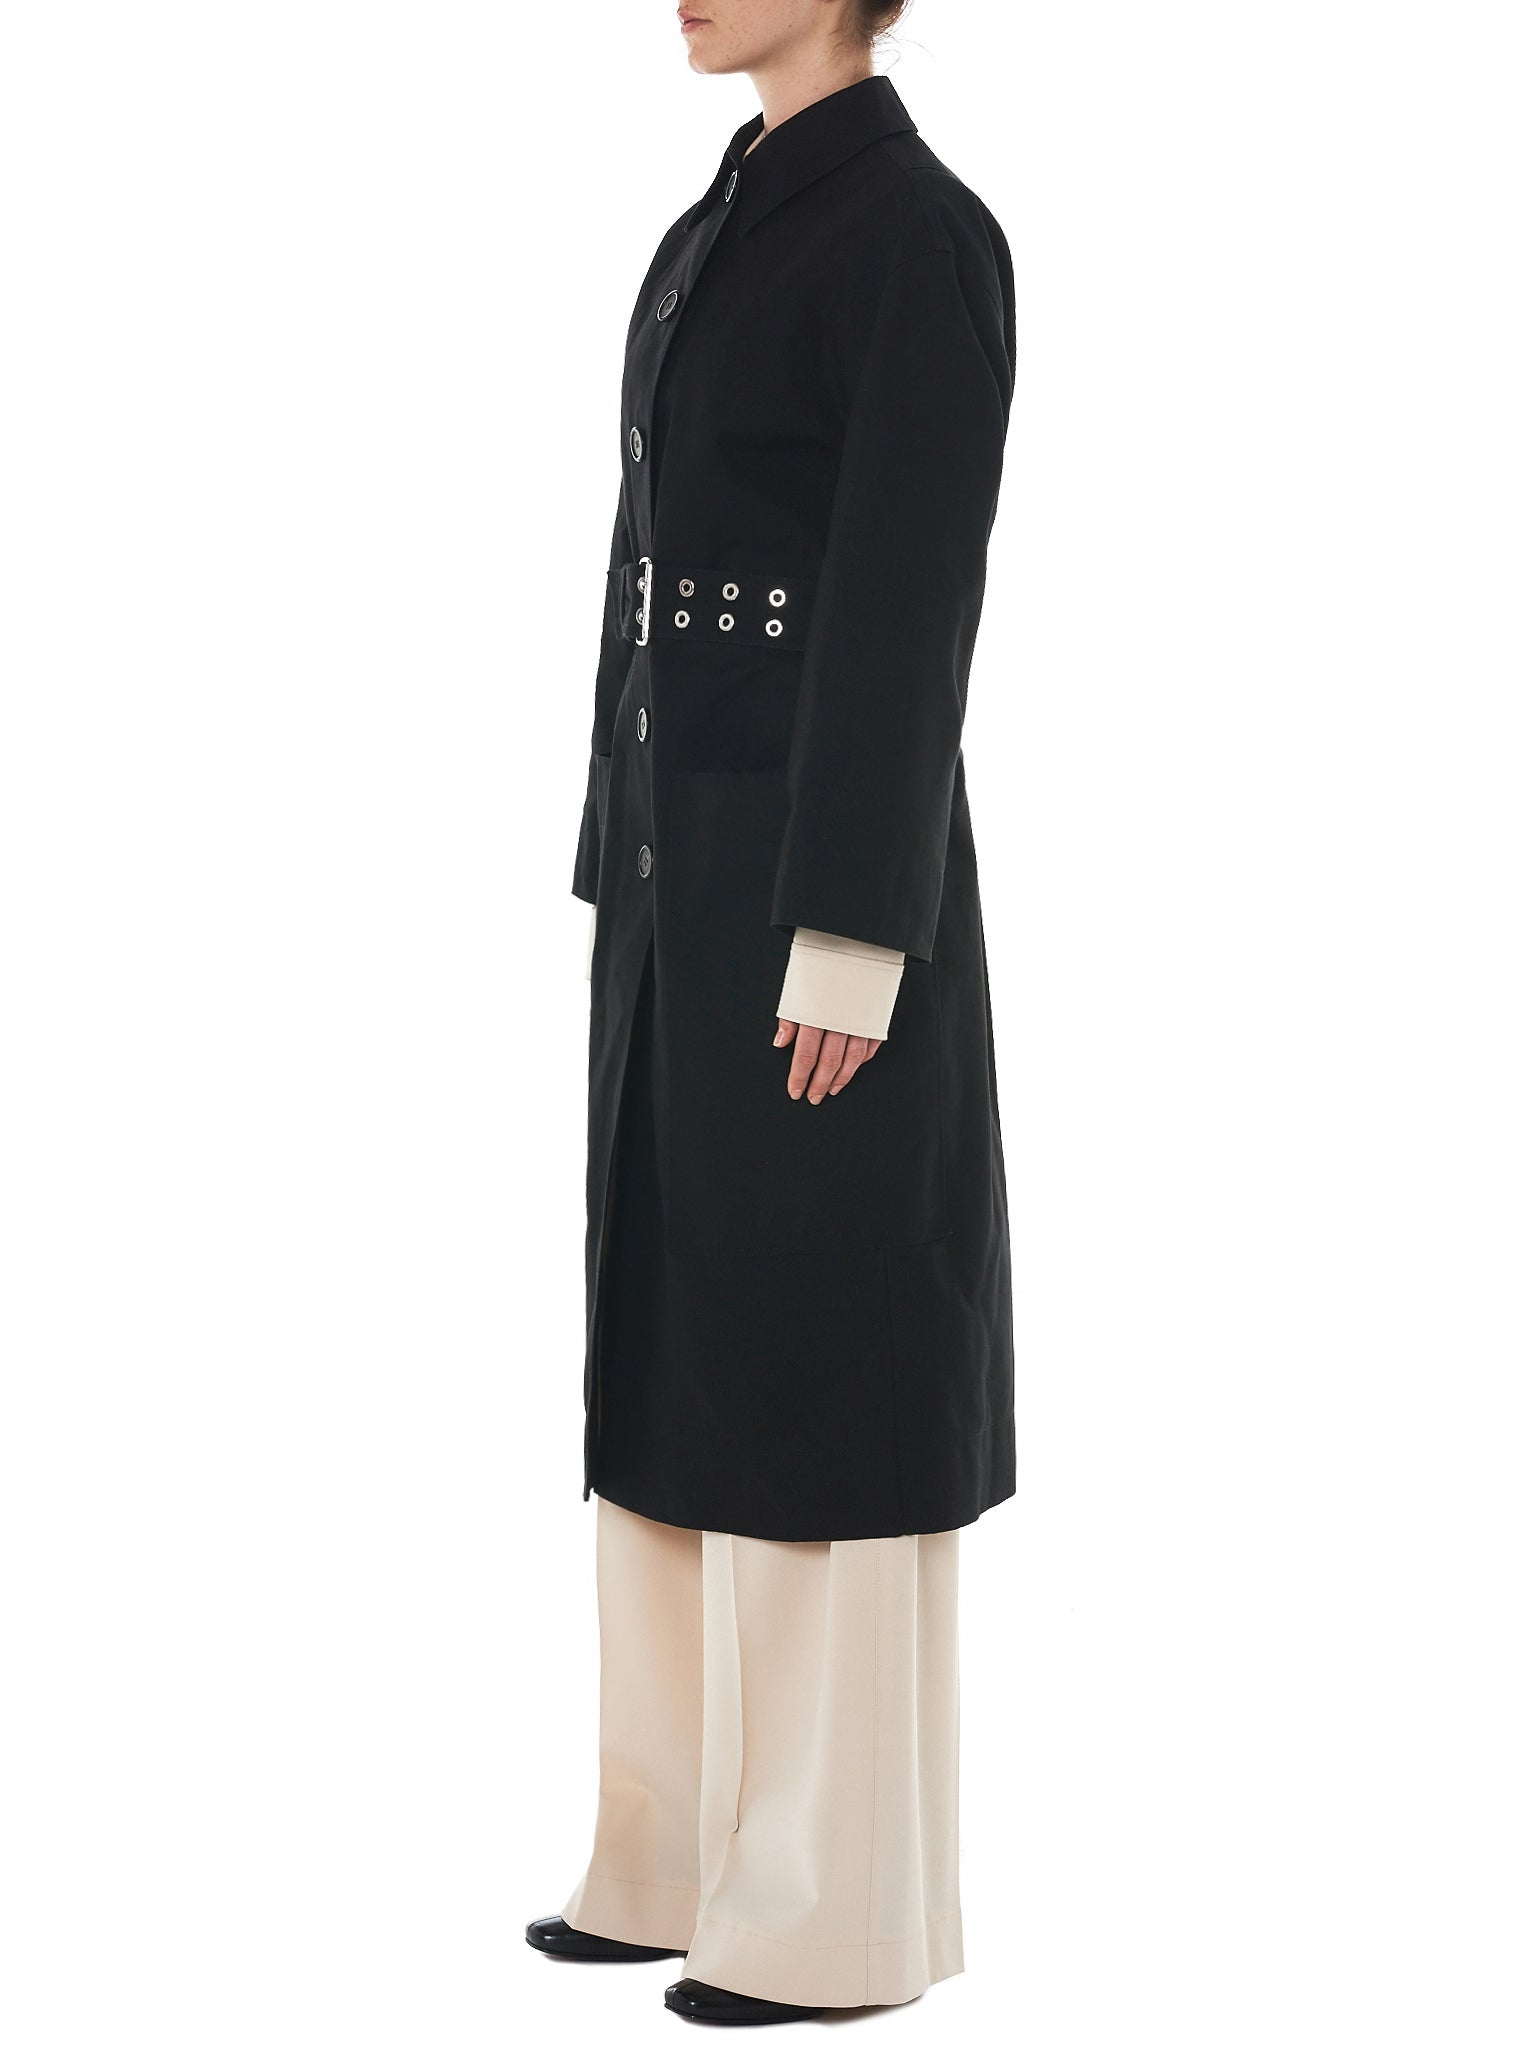 Kwaidan Oversized Coat - Hlorenzo Side